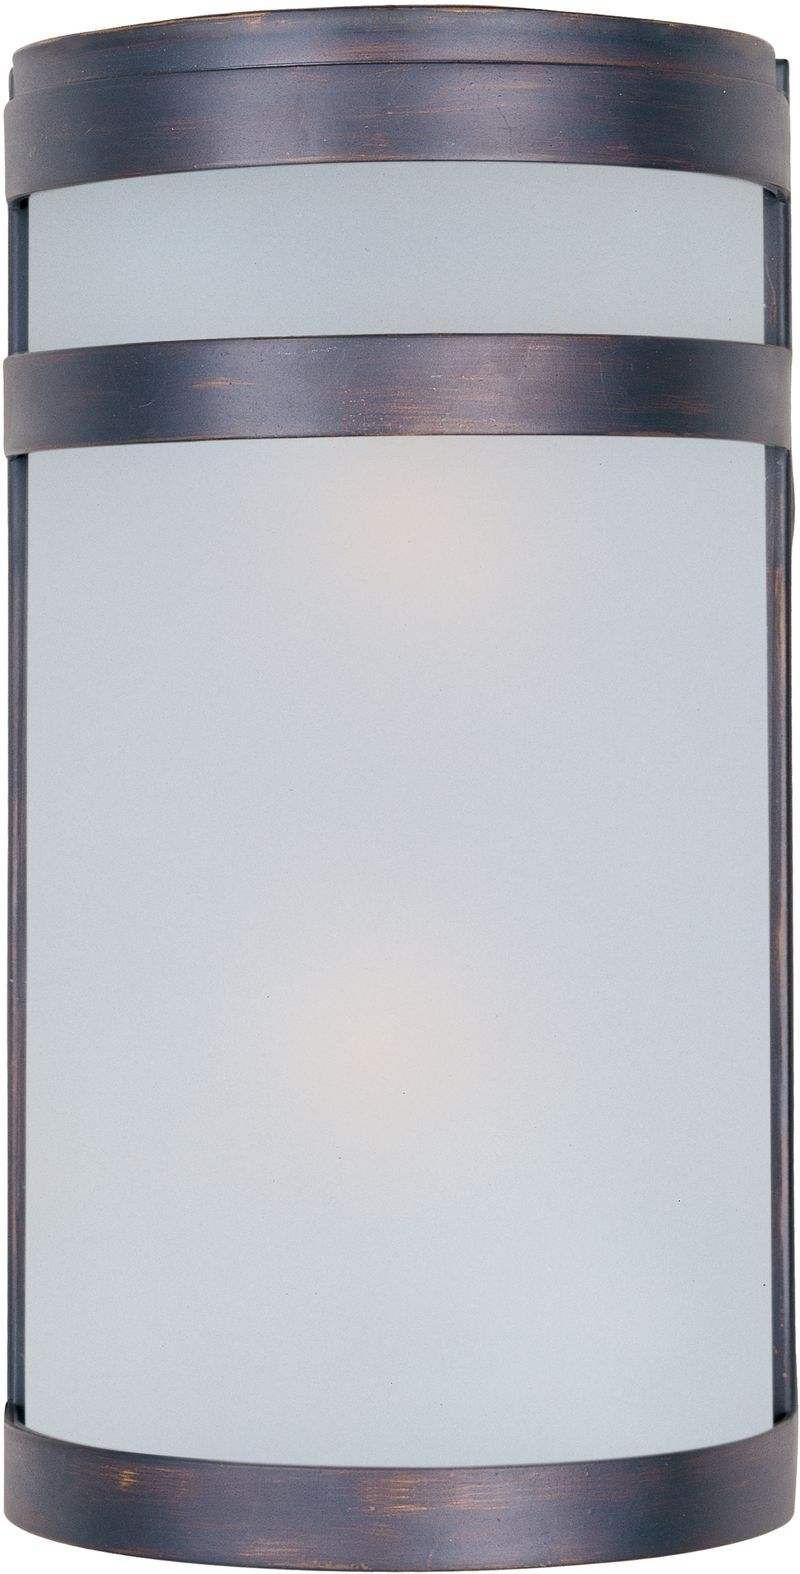 """Arc 6.5"""" 2-Light Outdoor Wall Mount - Oil Rubbed Bronze"""